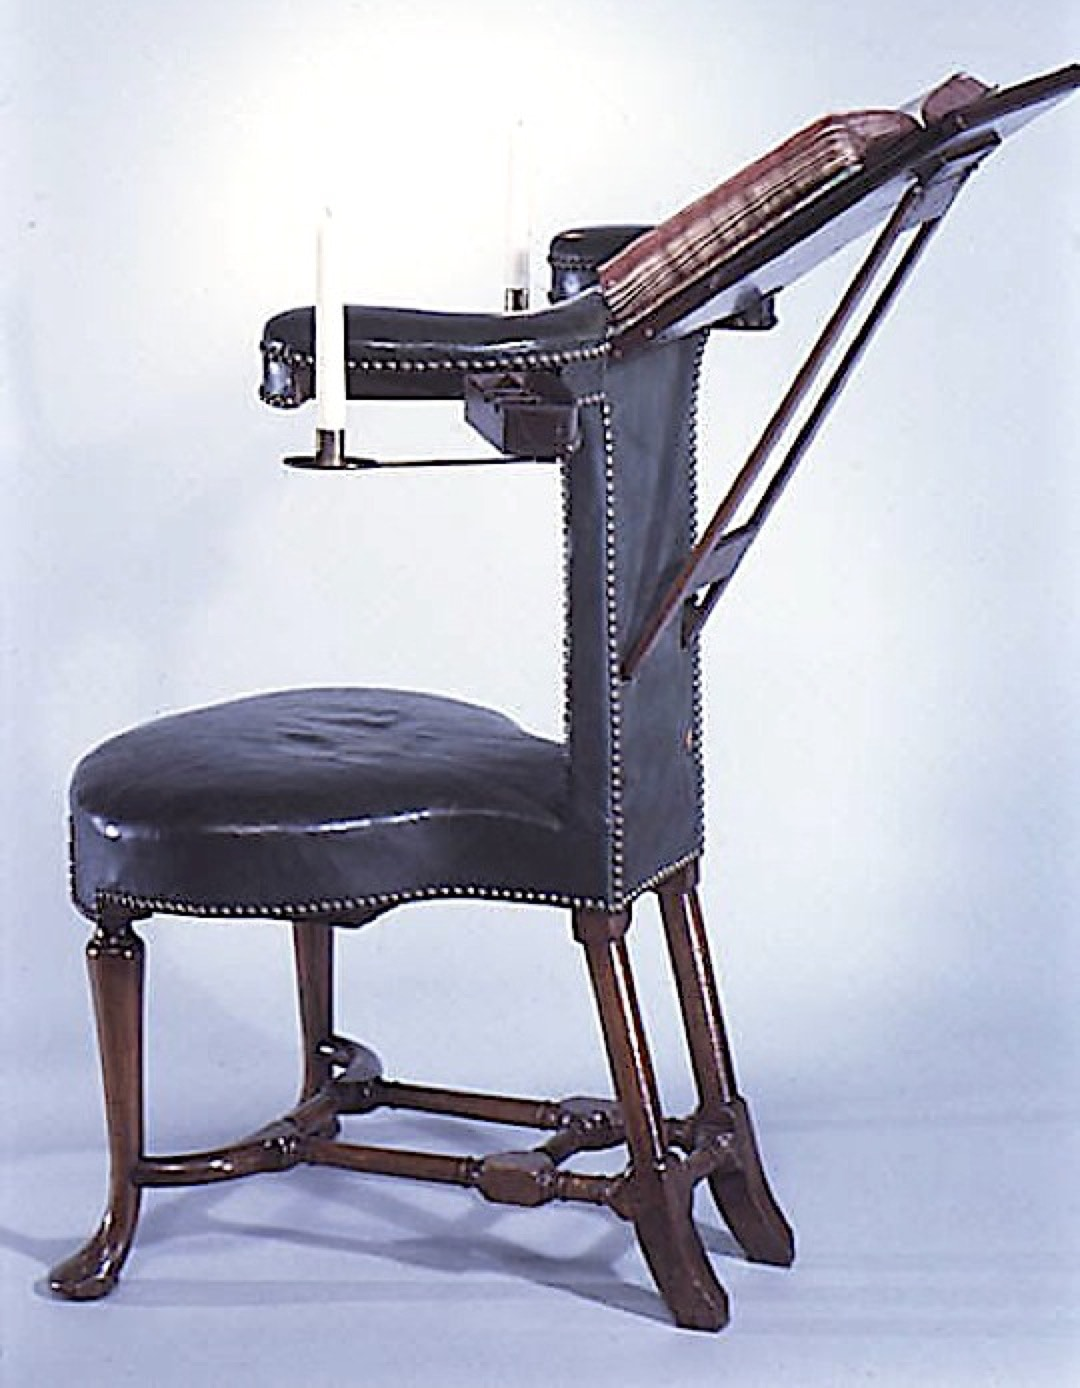 British reading chair 1750 - book machines before Kindle